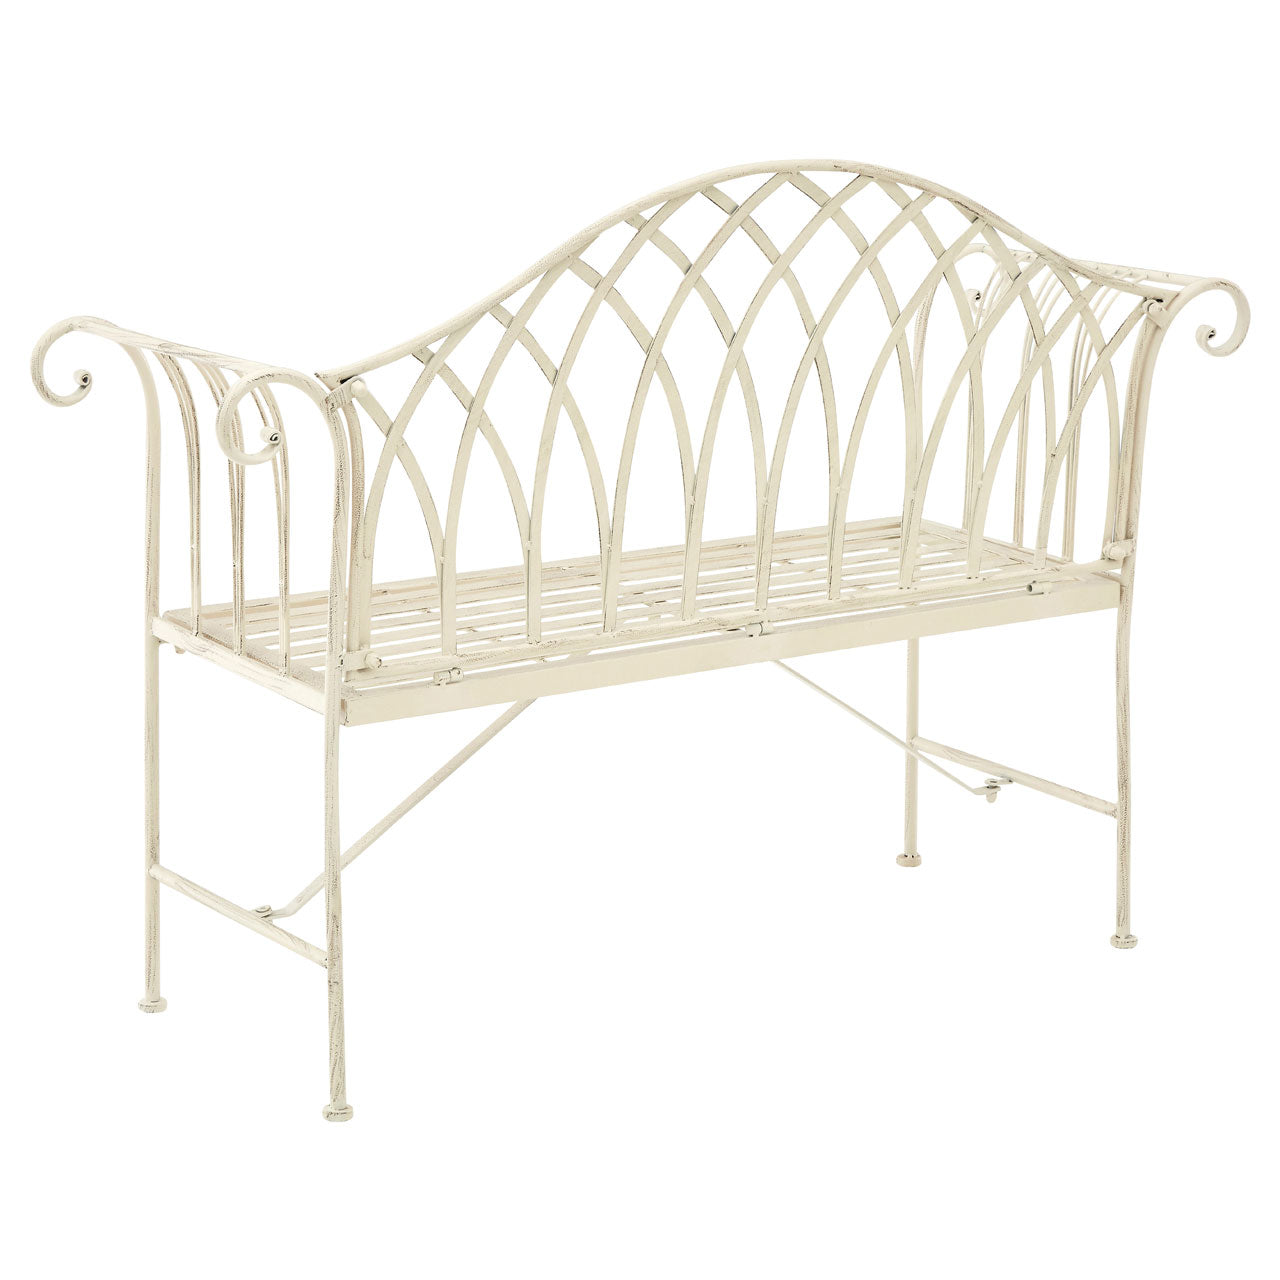 Finchwood Jardin Bench in White - Ezzo